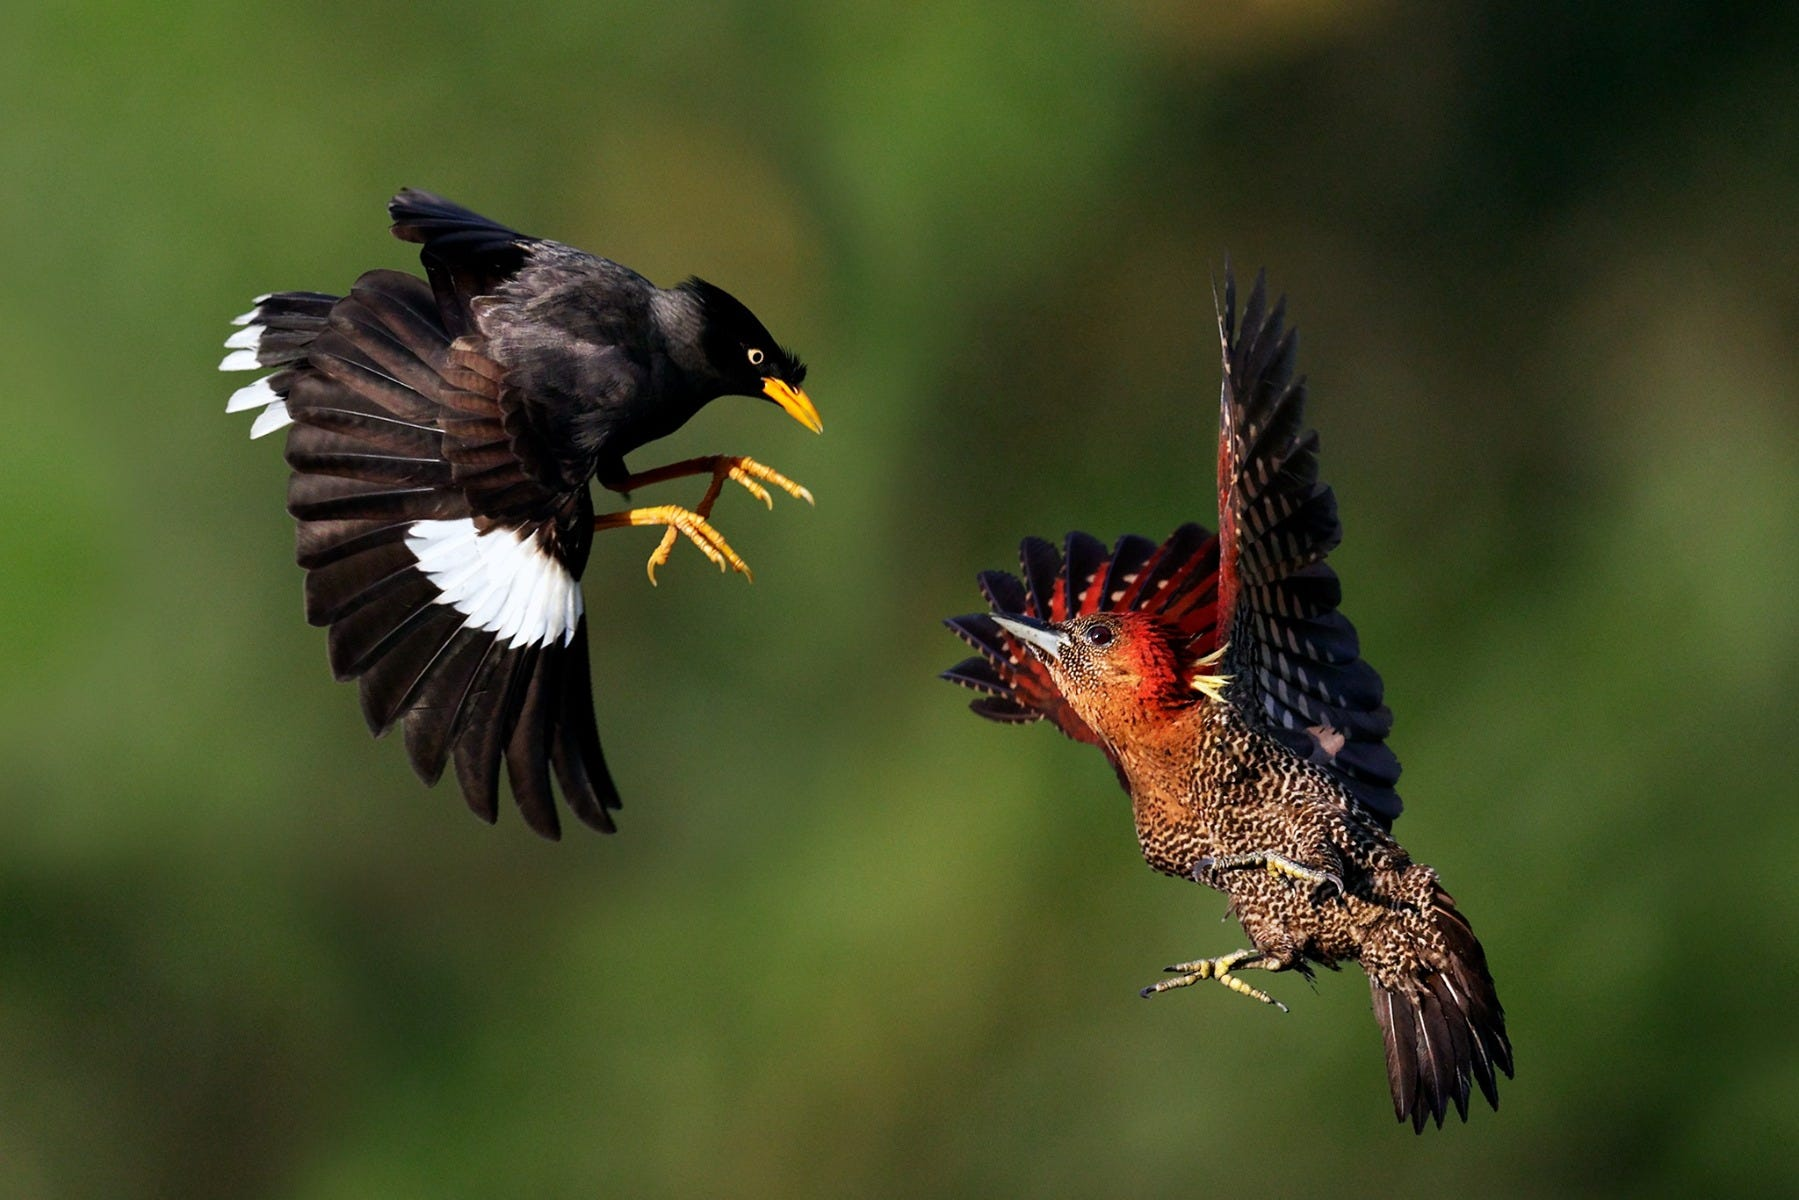 Birds in aerial fight shot by Canon Photographer William Tan using Canon EOS R6